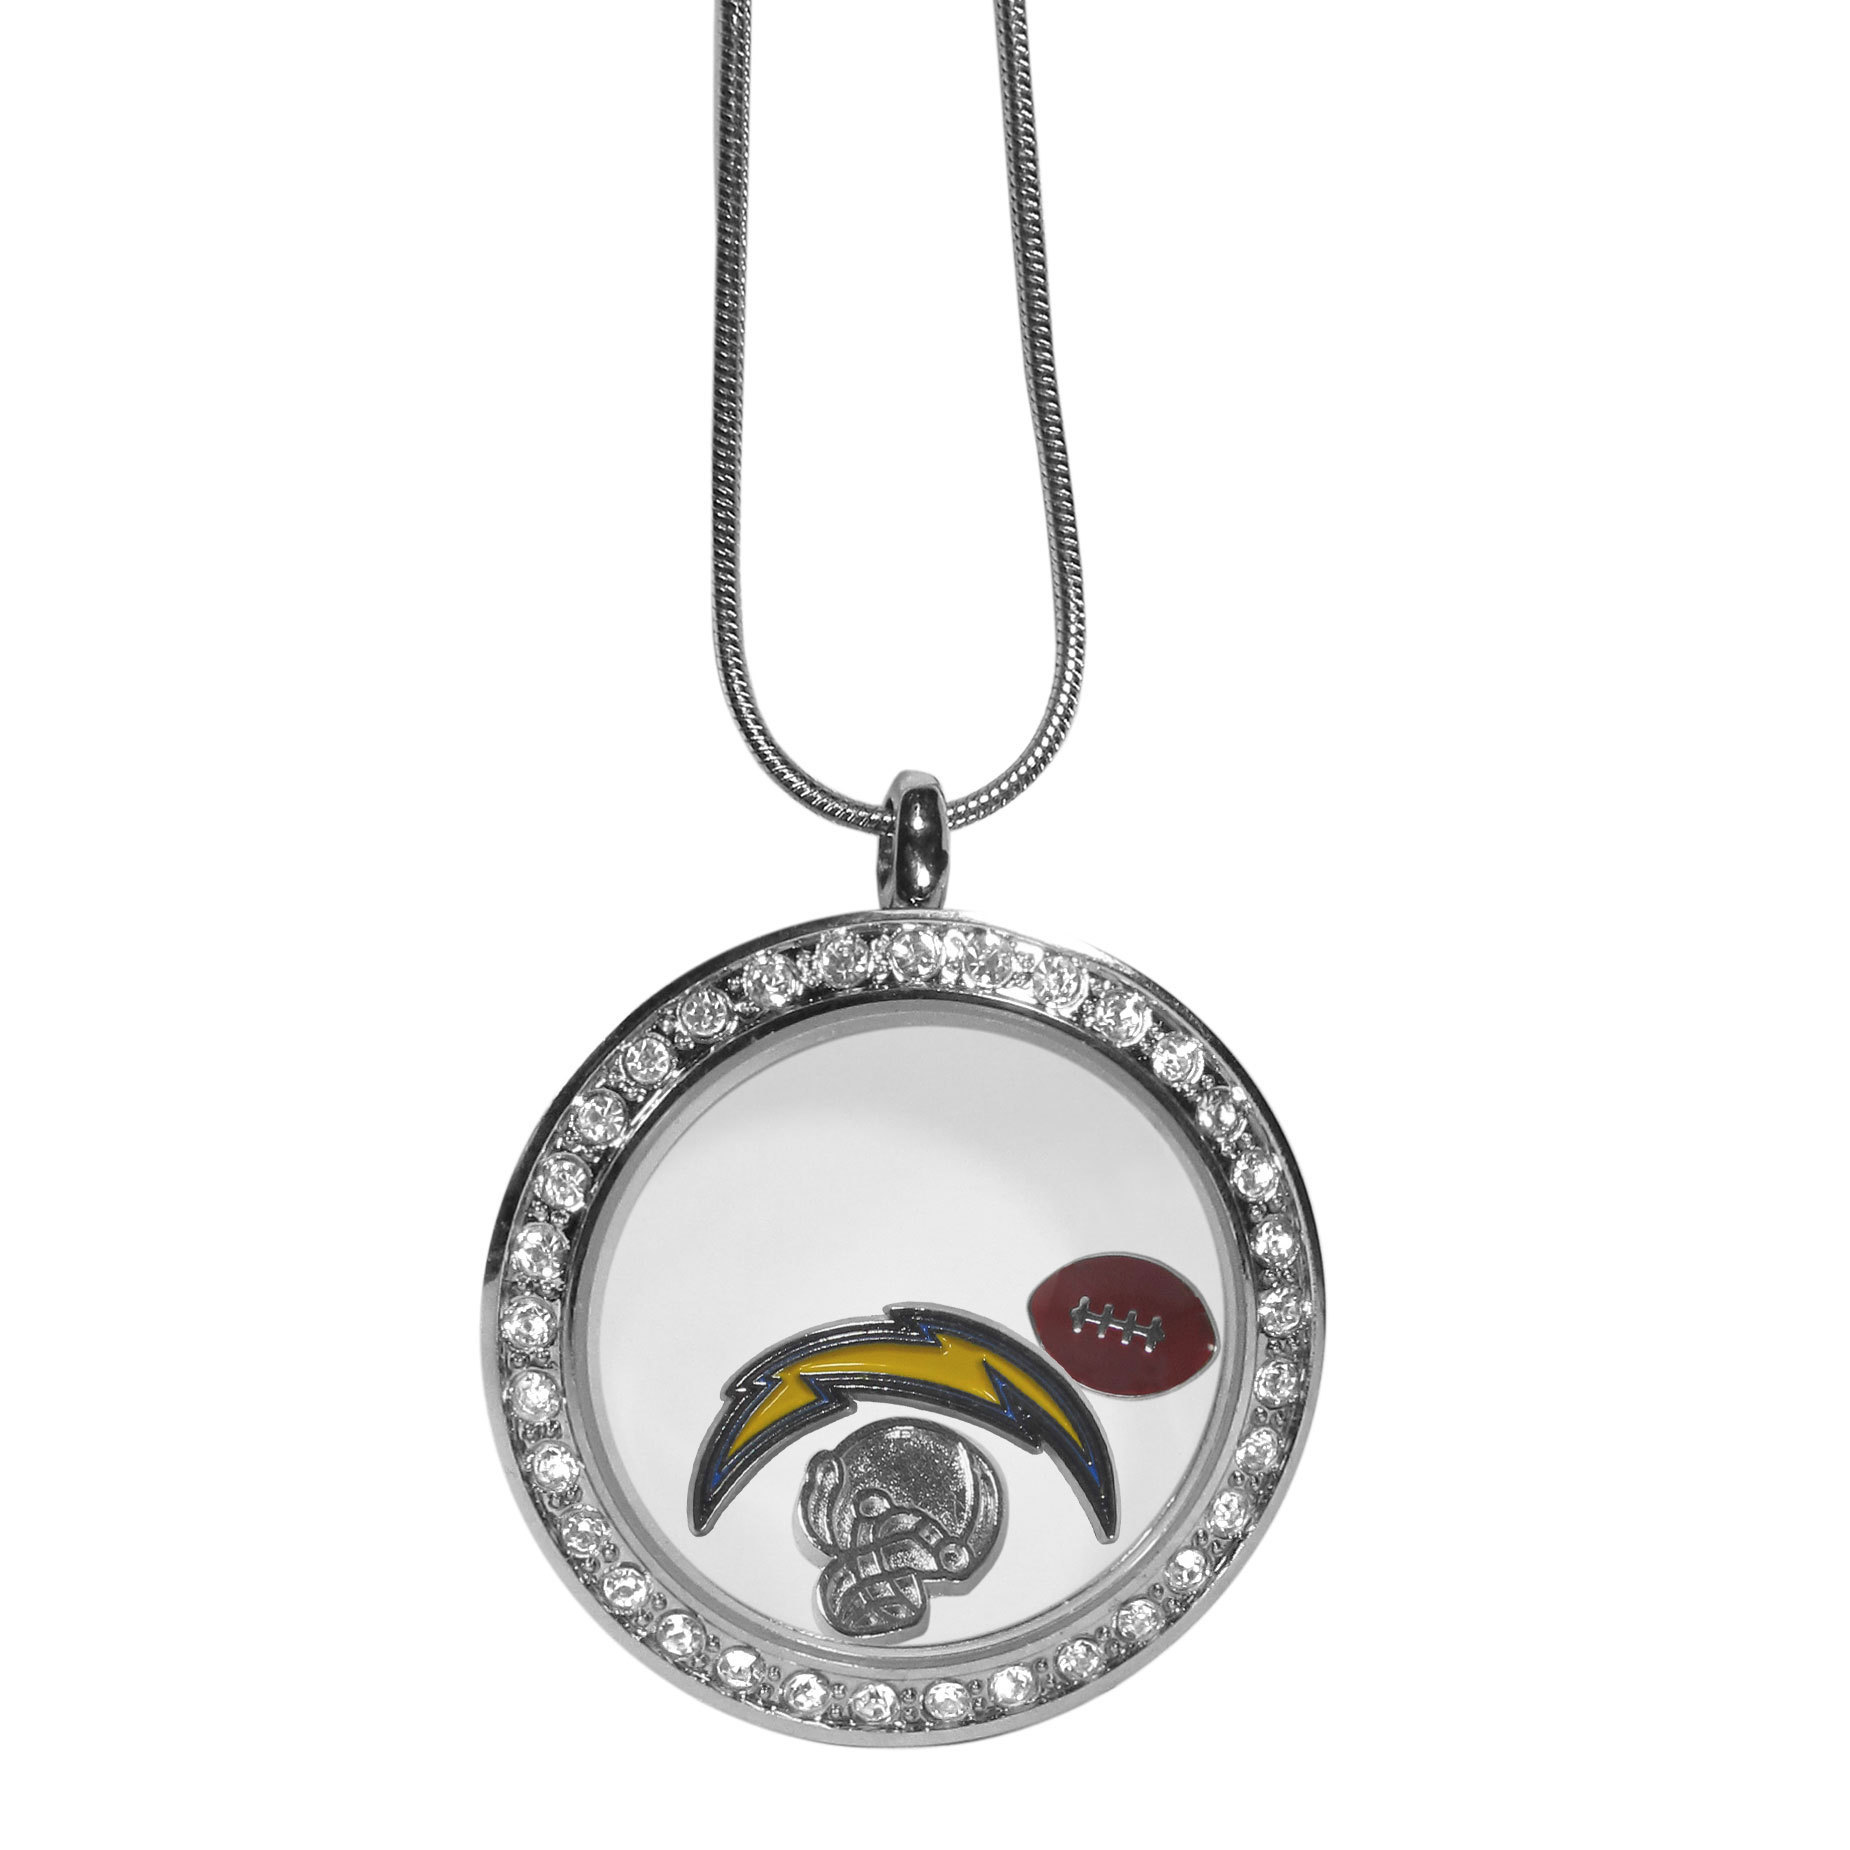 Los Angeles Chargers Locket Necklace - We have taken the classic floating charm locket and combined with licensed sports charms to create a must have fan necklace. The necklace comes with 3 charms; 1 Los Angeles Chargers charm, one football charm and one helmet charm. The charms float in a beautiful locket that has a strong magnetic closure with a rhinestone border. The locket comes on an 18 inch snake chain with 2 inch extender.